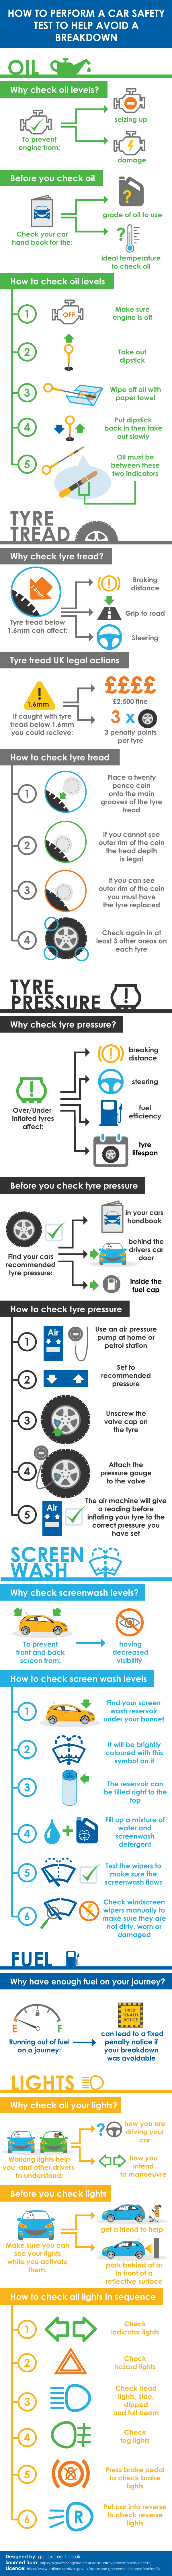 how-to-perform-a-car-safety-test-infographic